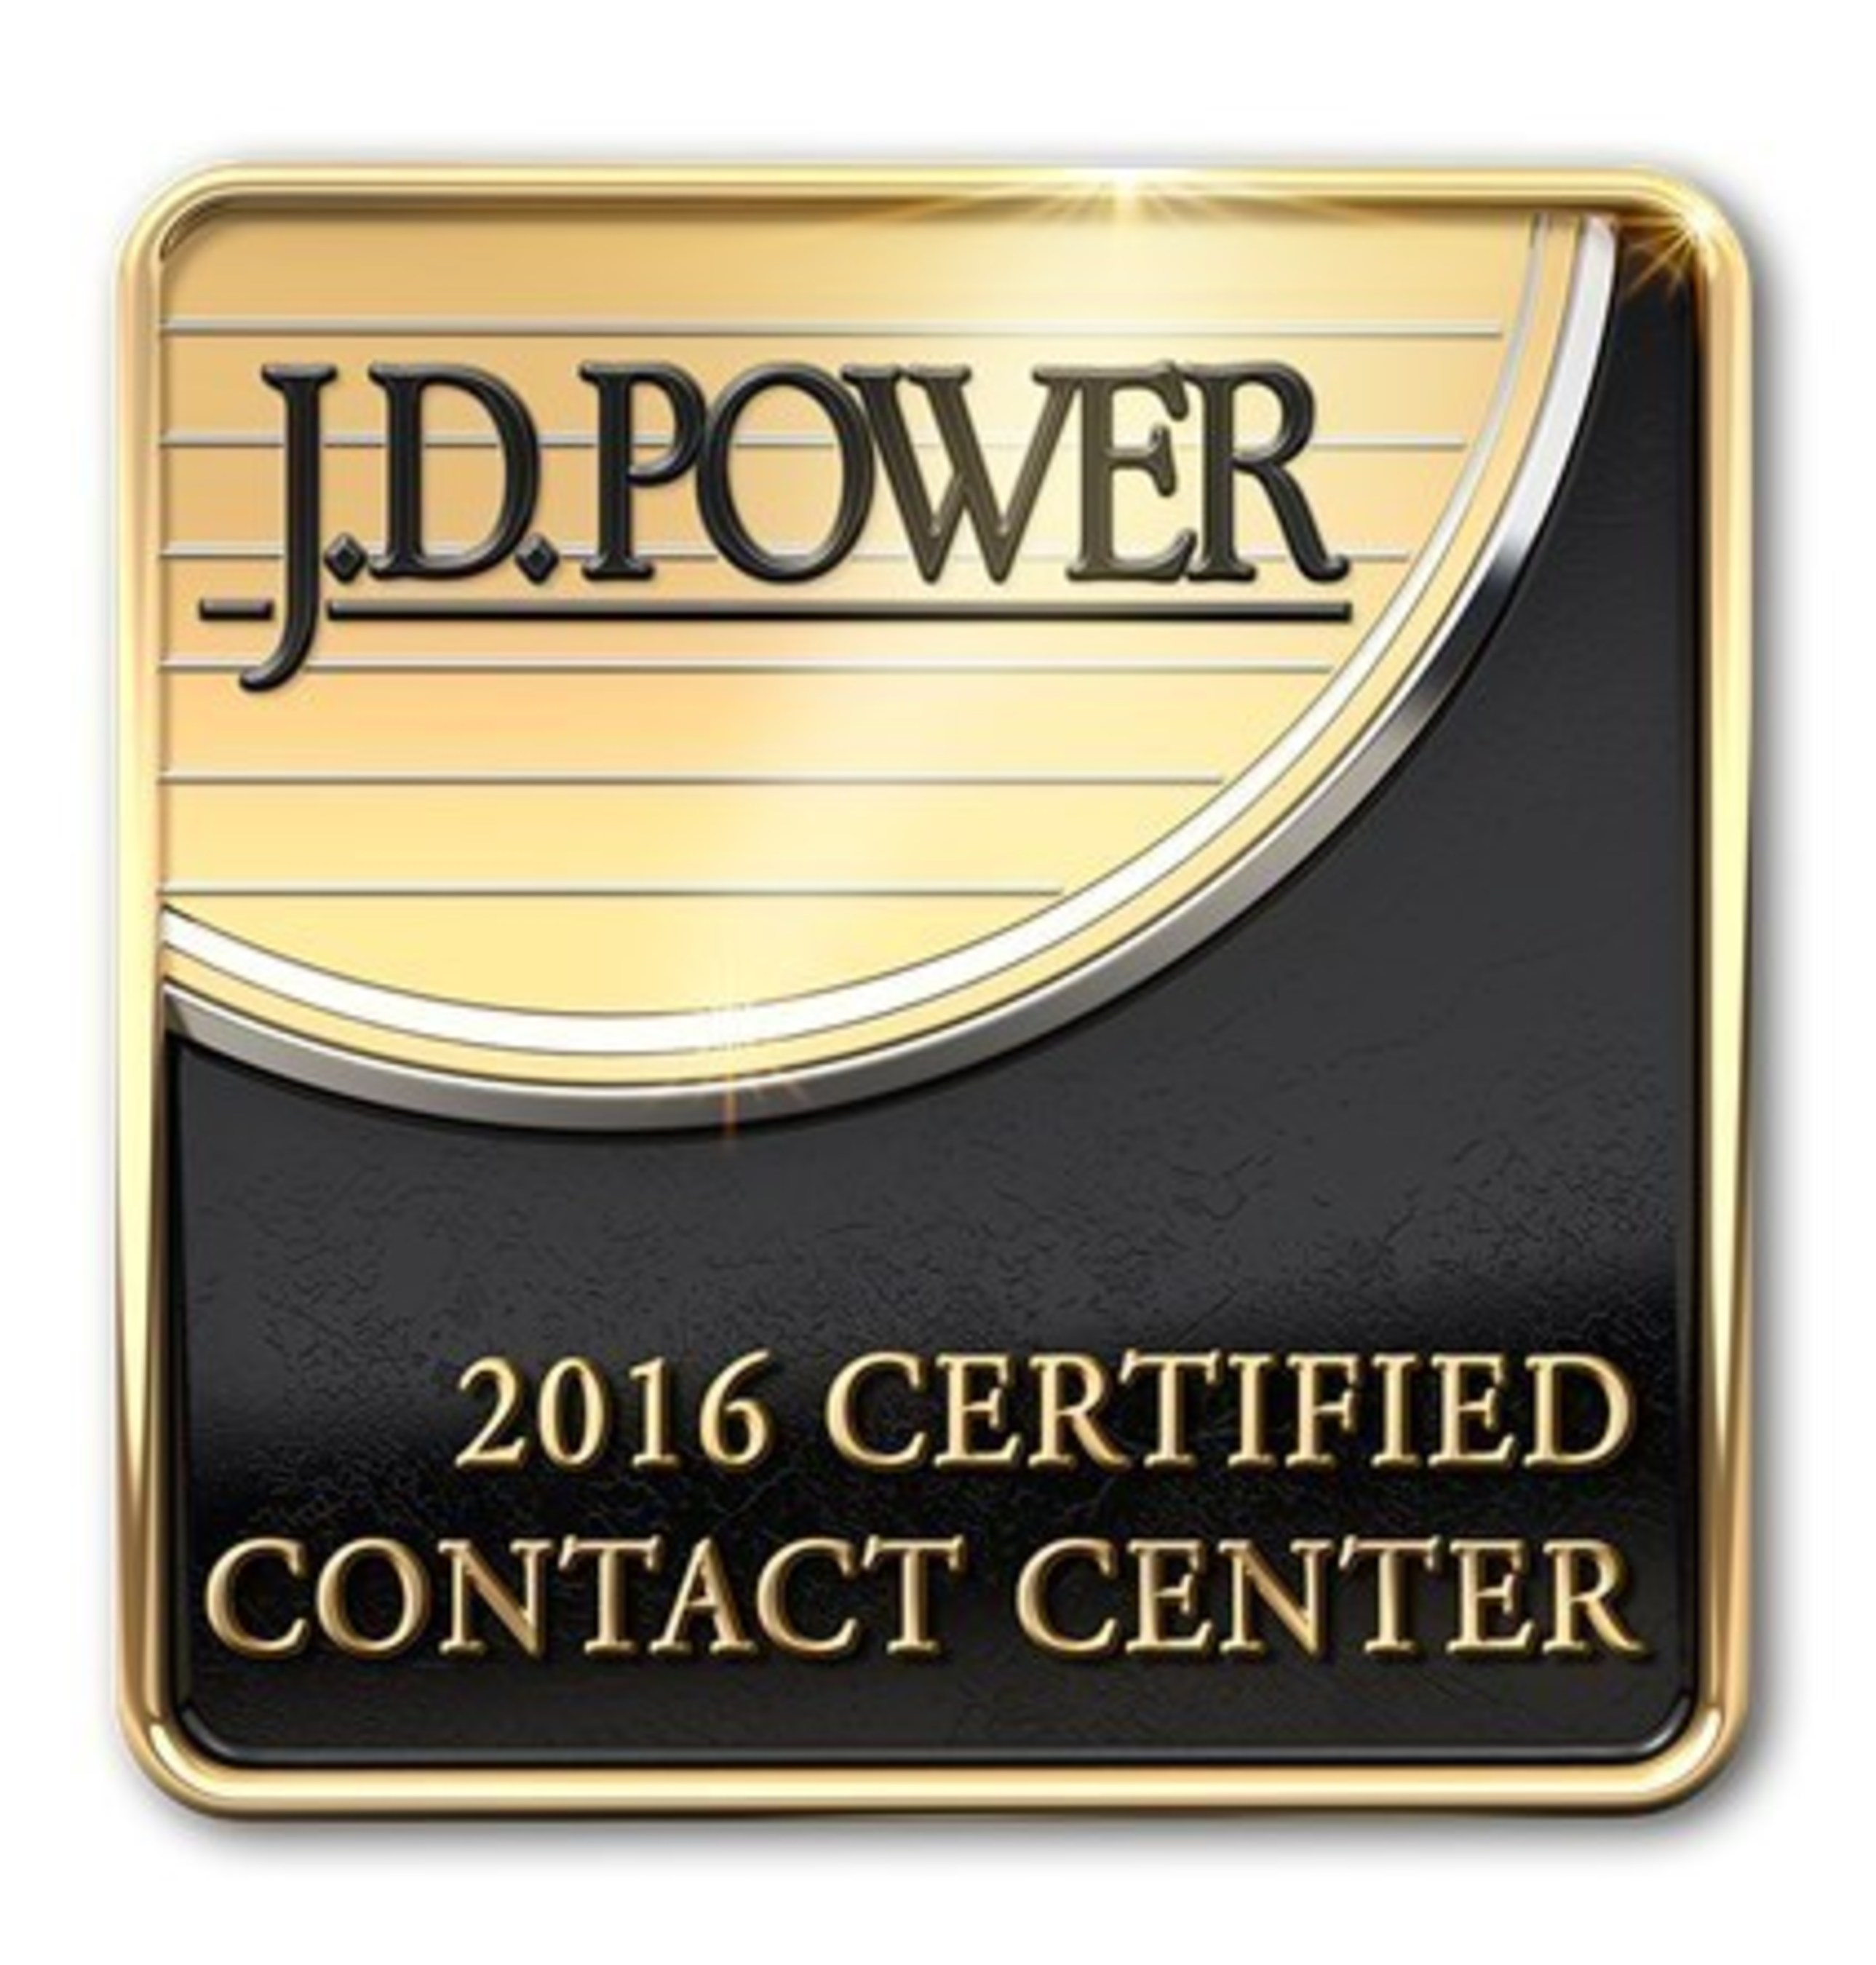 Delta Premium Sales and Service Customer Engagement Centers Earn J.D. Power Certification for Third Consecutive Year